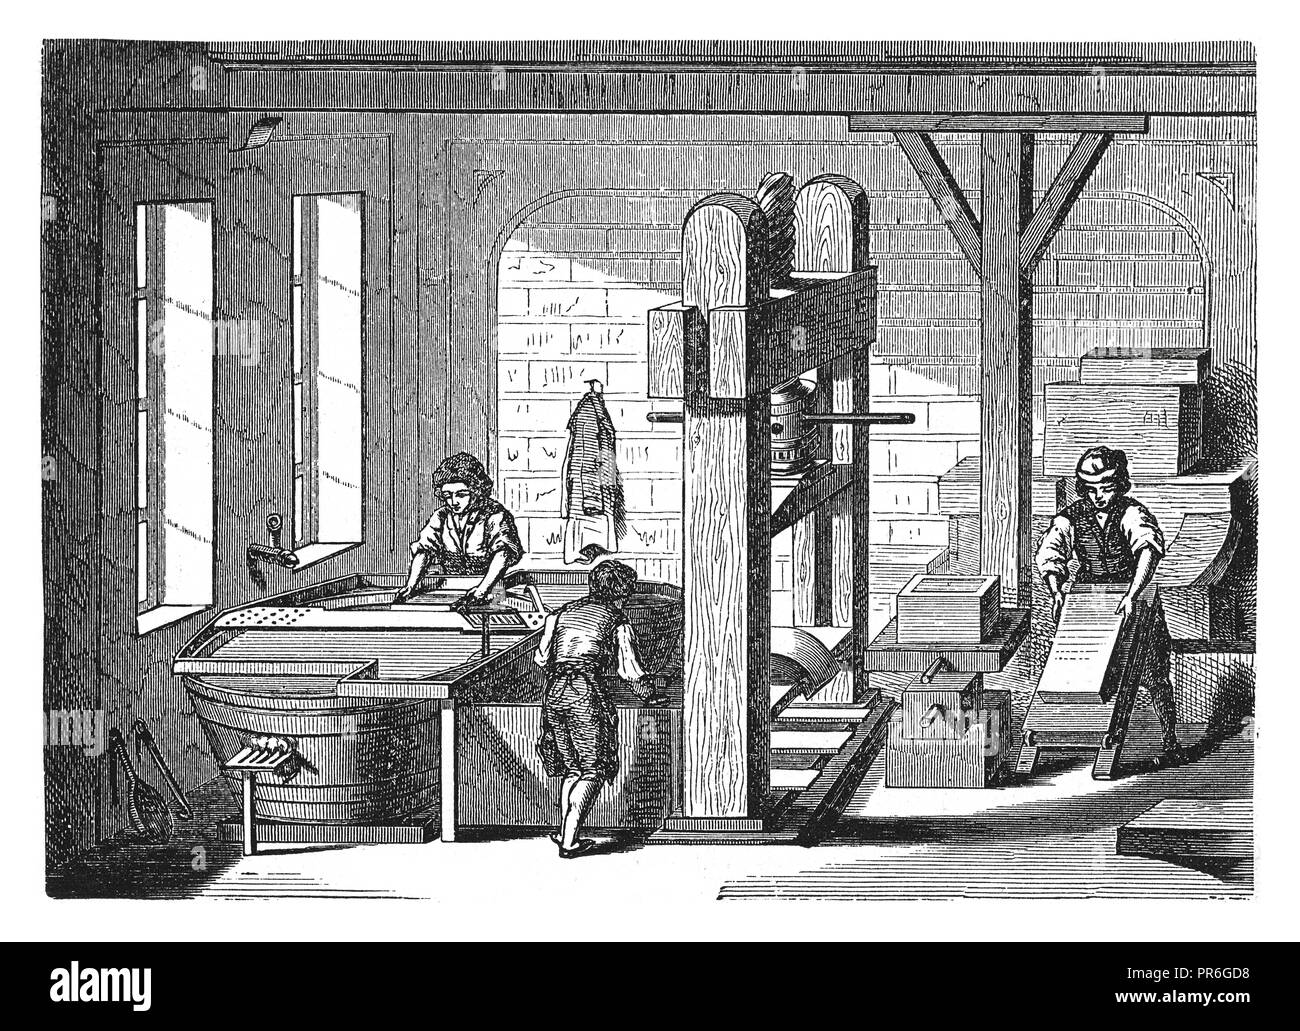 19-th century illustration of a process of manual paper making.Published in 'Novoveki Izumi u znanosti, obrtu i umjetnosti' by dr. Bogoslav Sulek, dr. - Stock Image